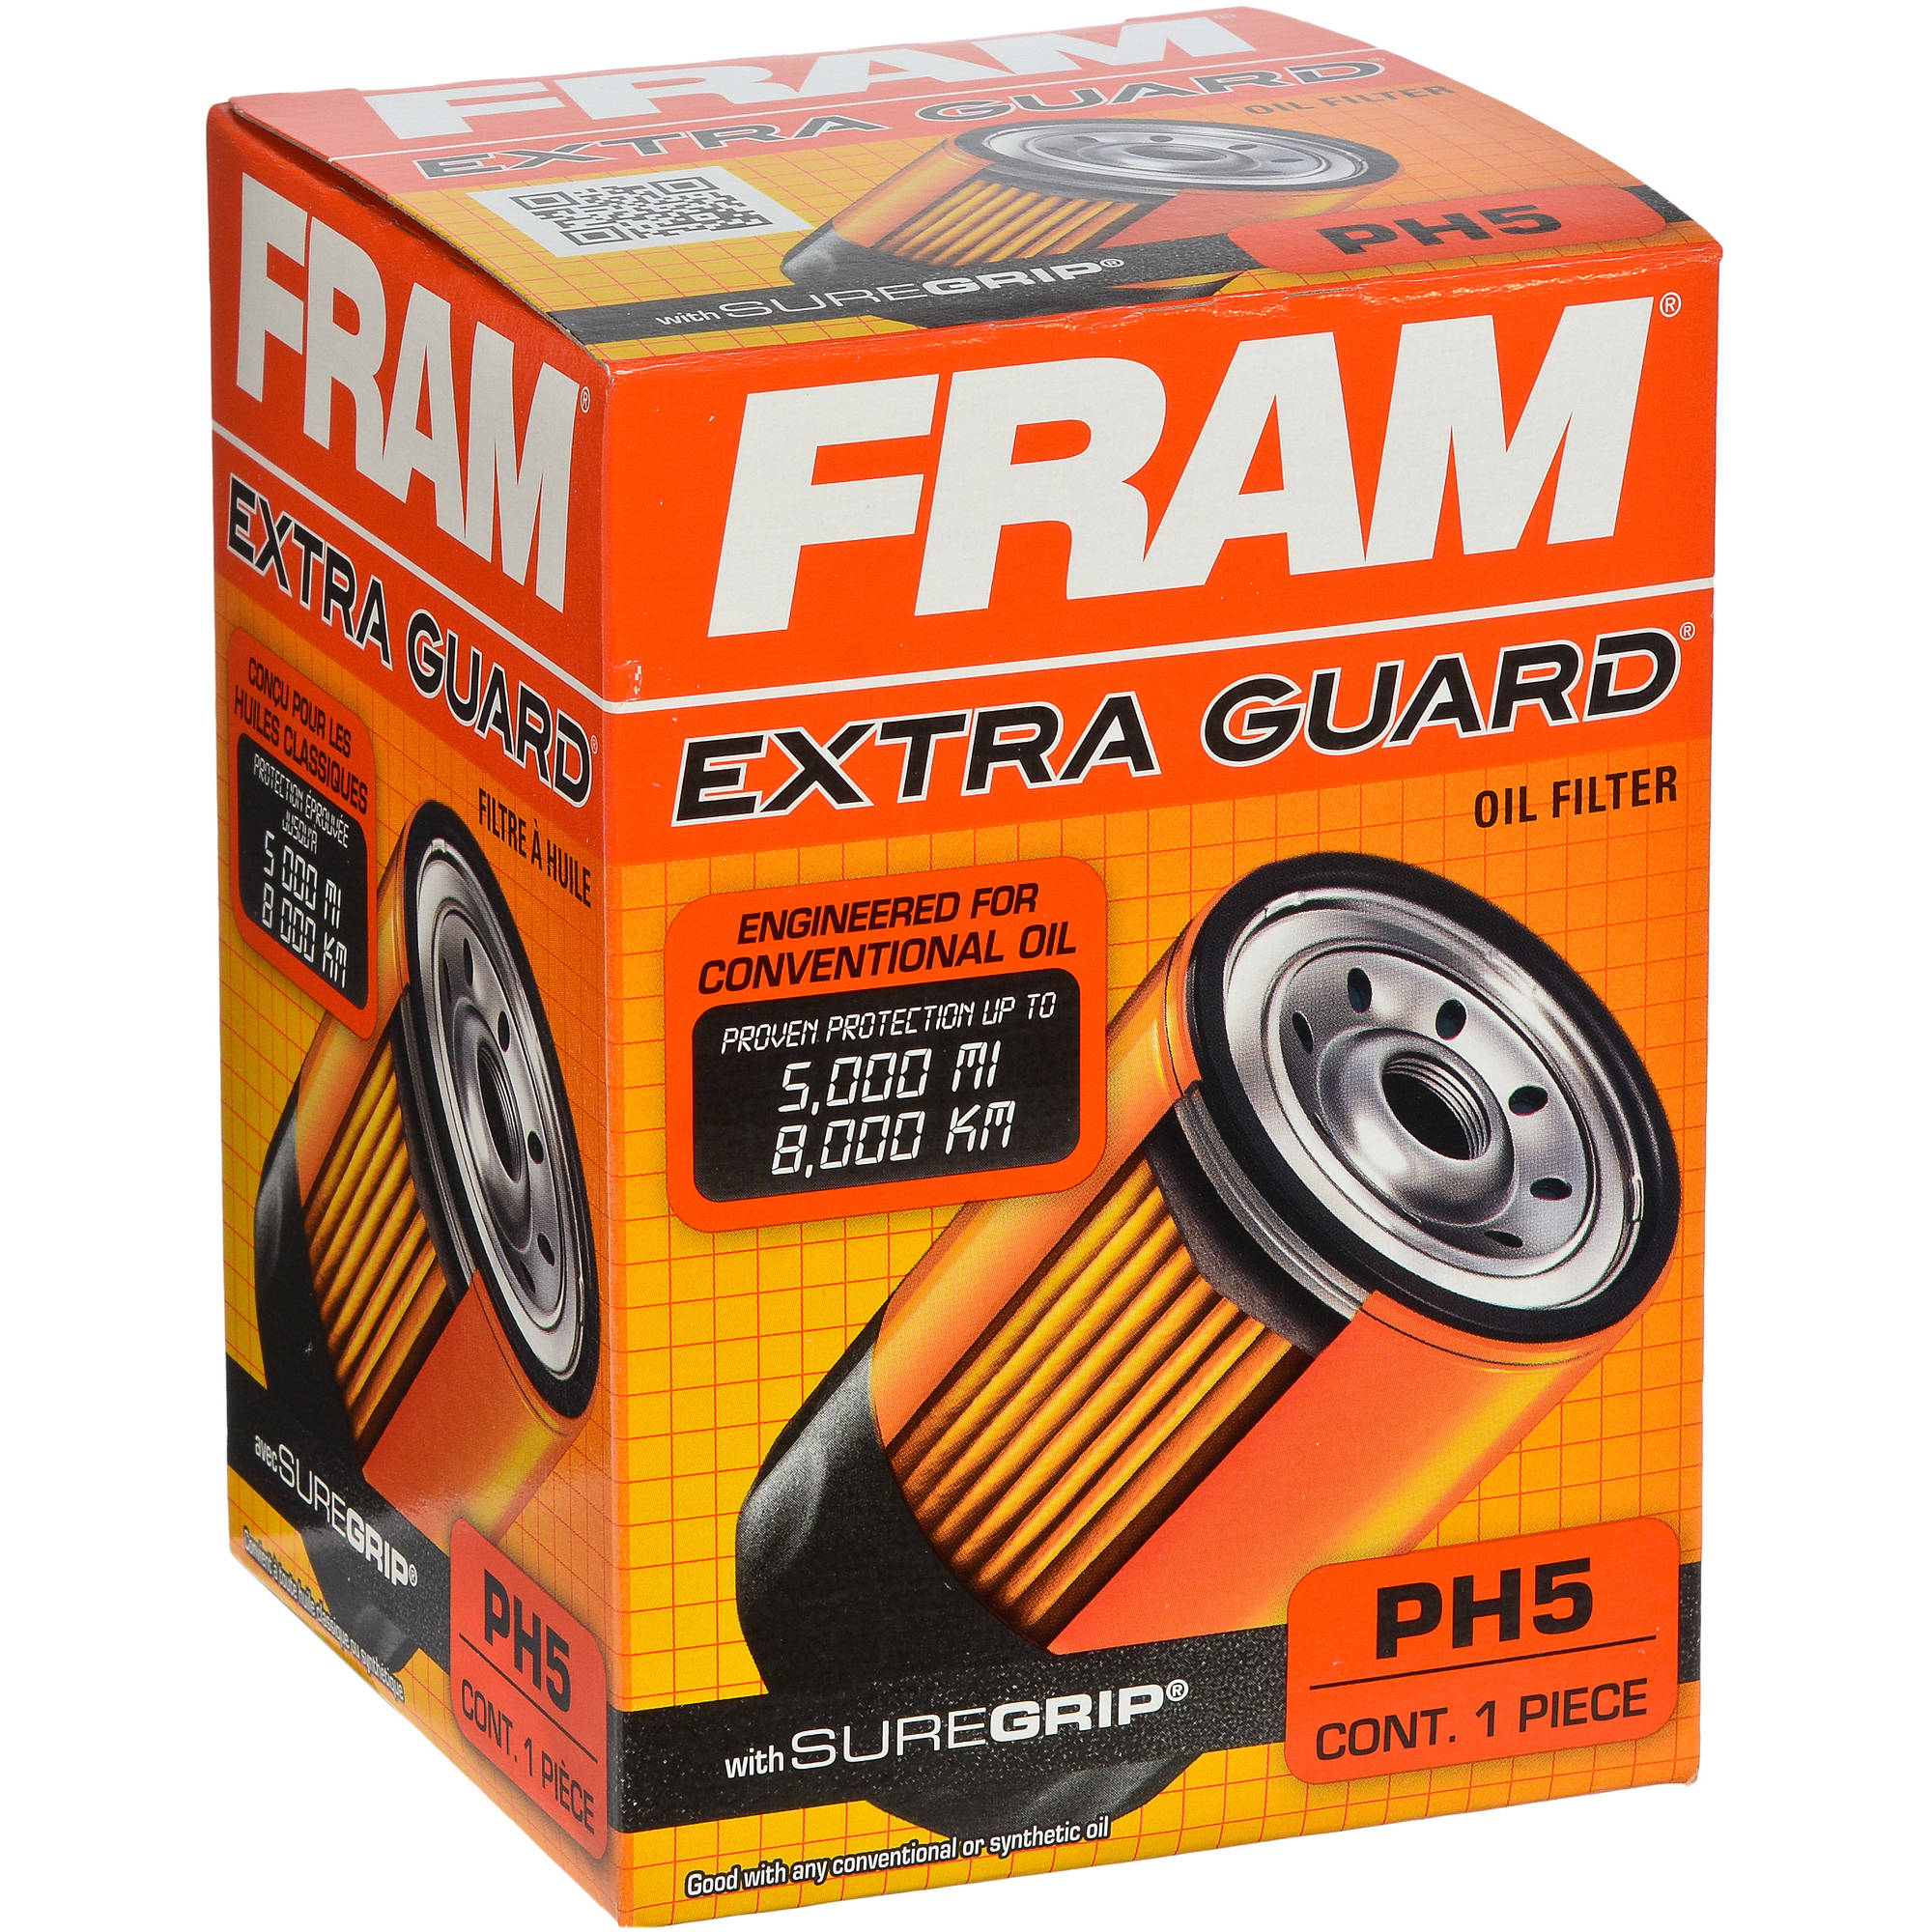 FRAM Extra Guard Oil Filter, PH5